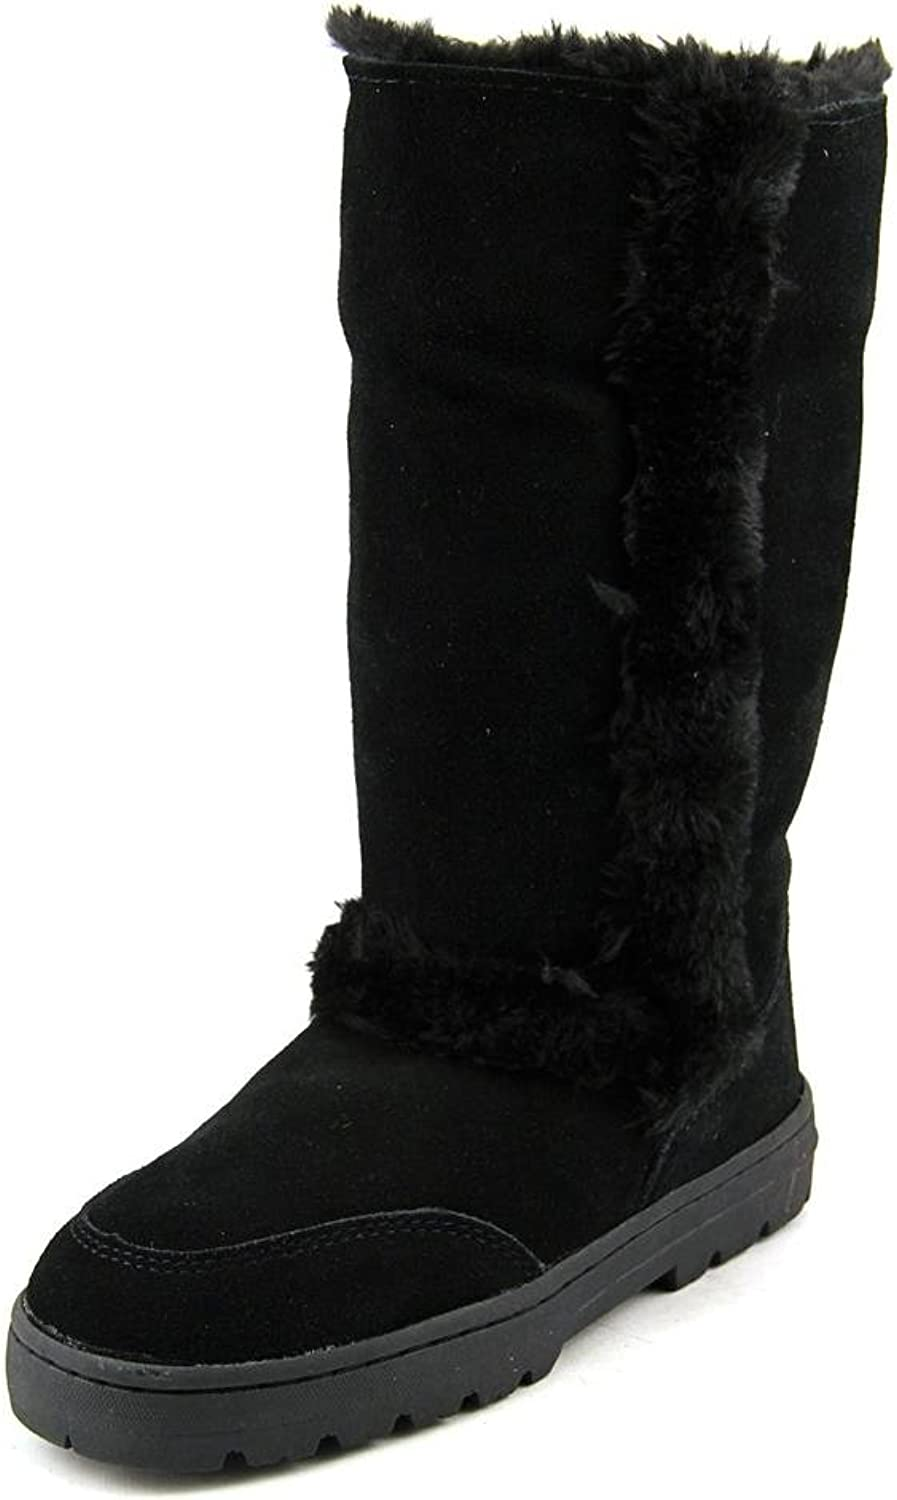 Style & Co. Wittyblk Women's Boots(Certified Refurbished)